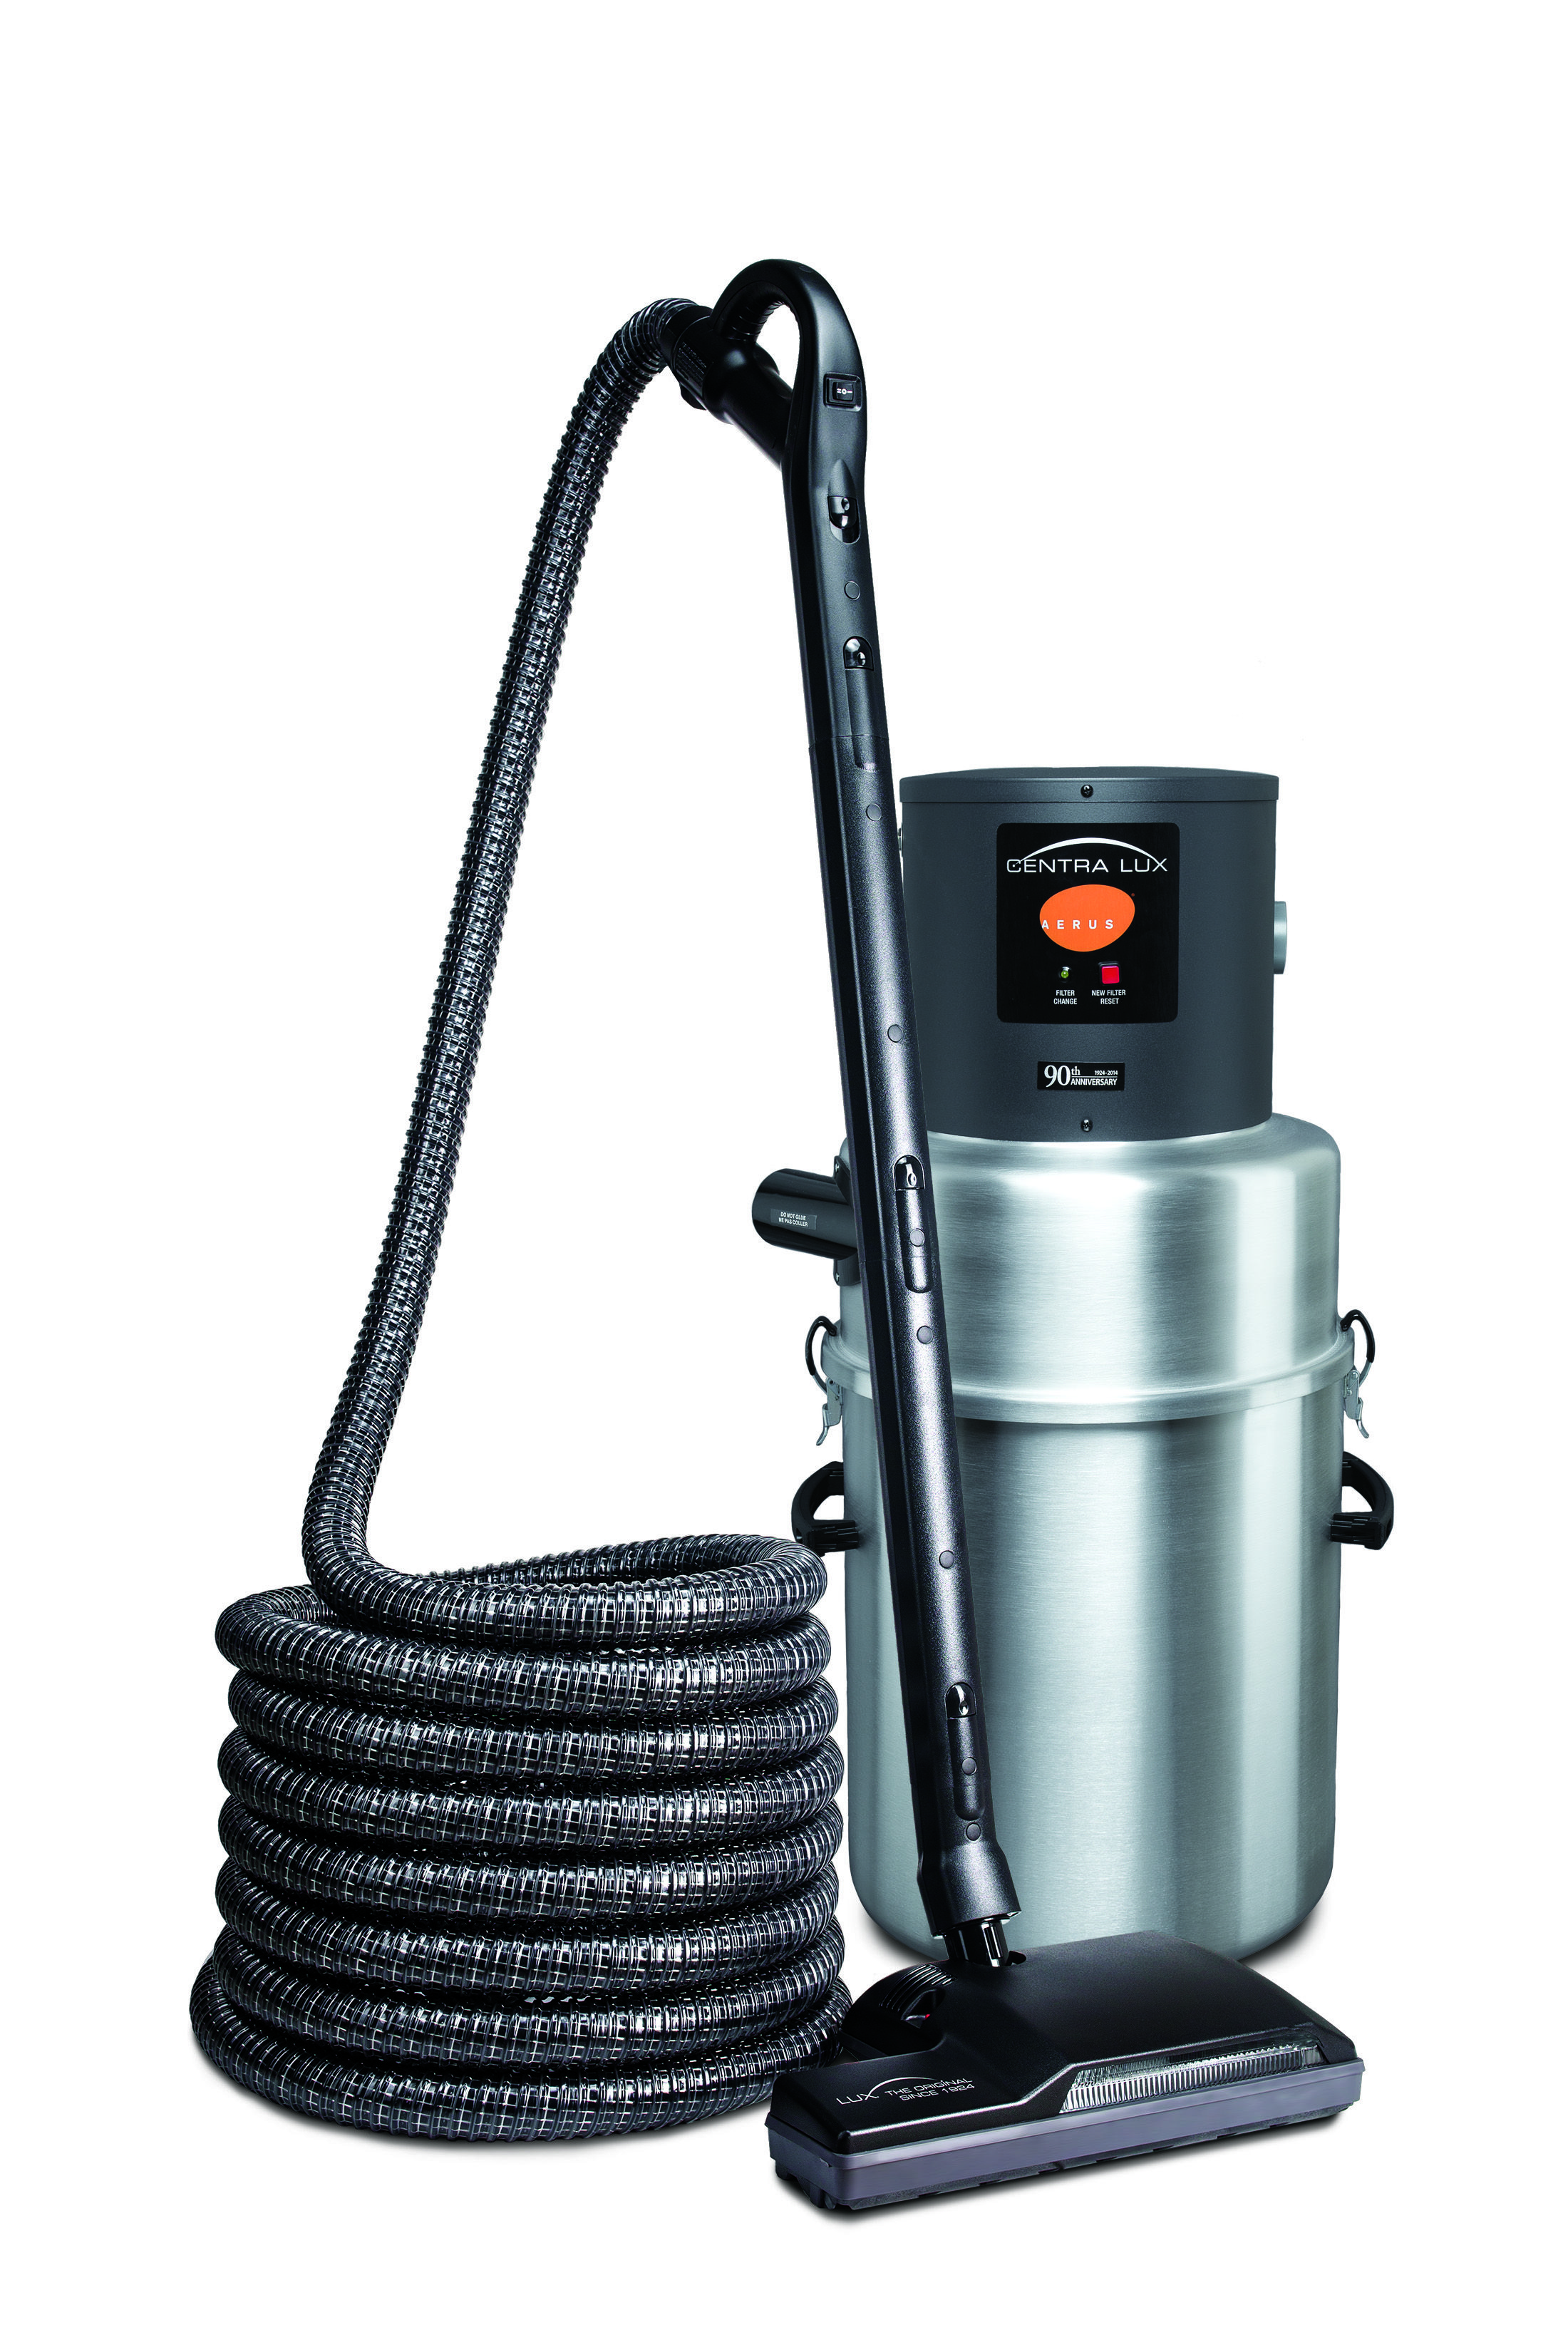 50 OFF NOW!! WHOLE HOME CENTRALUX VACUUM SYSTEM! (With